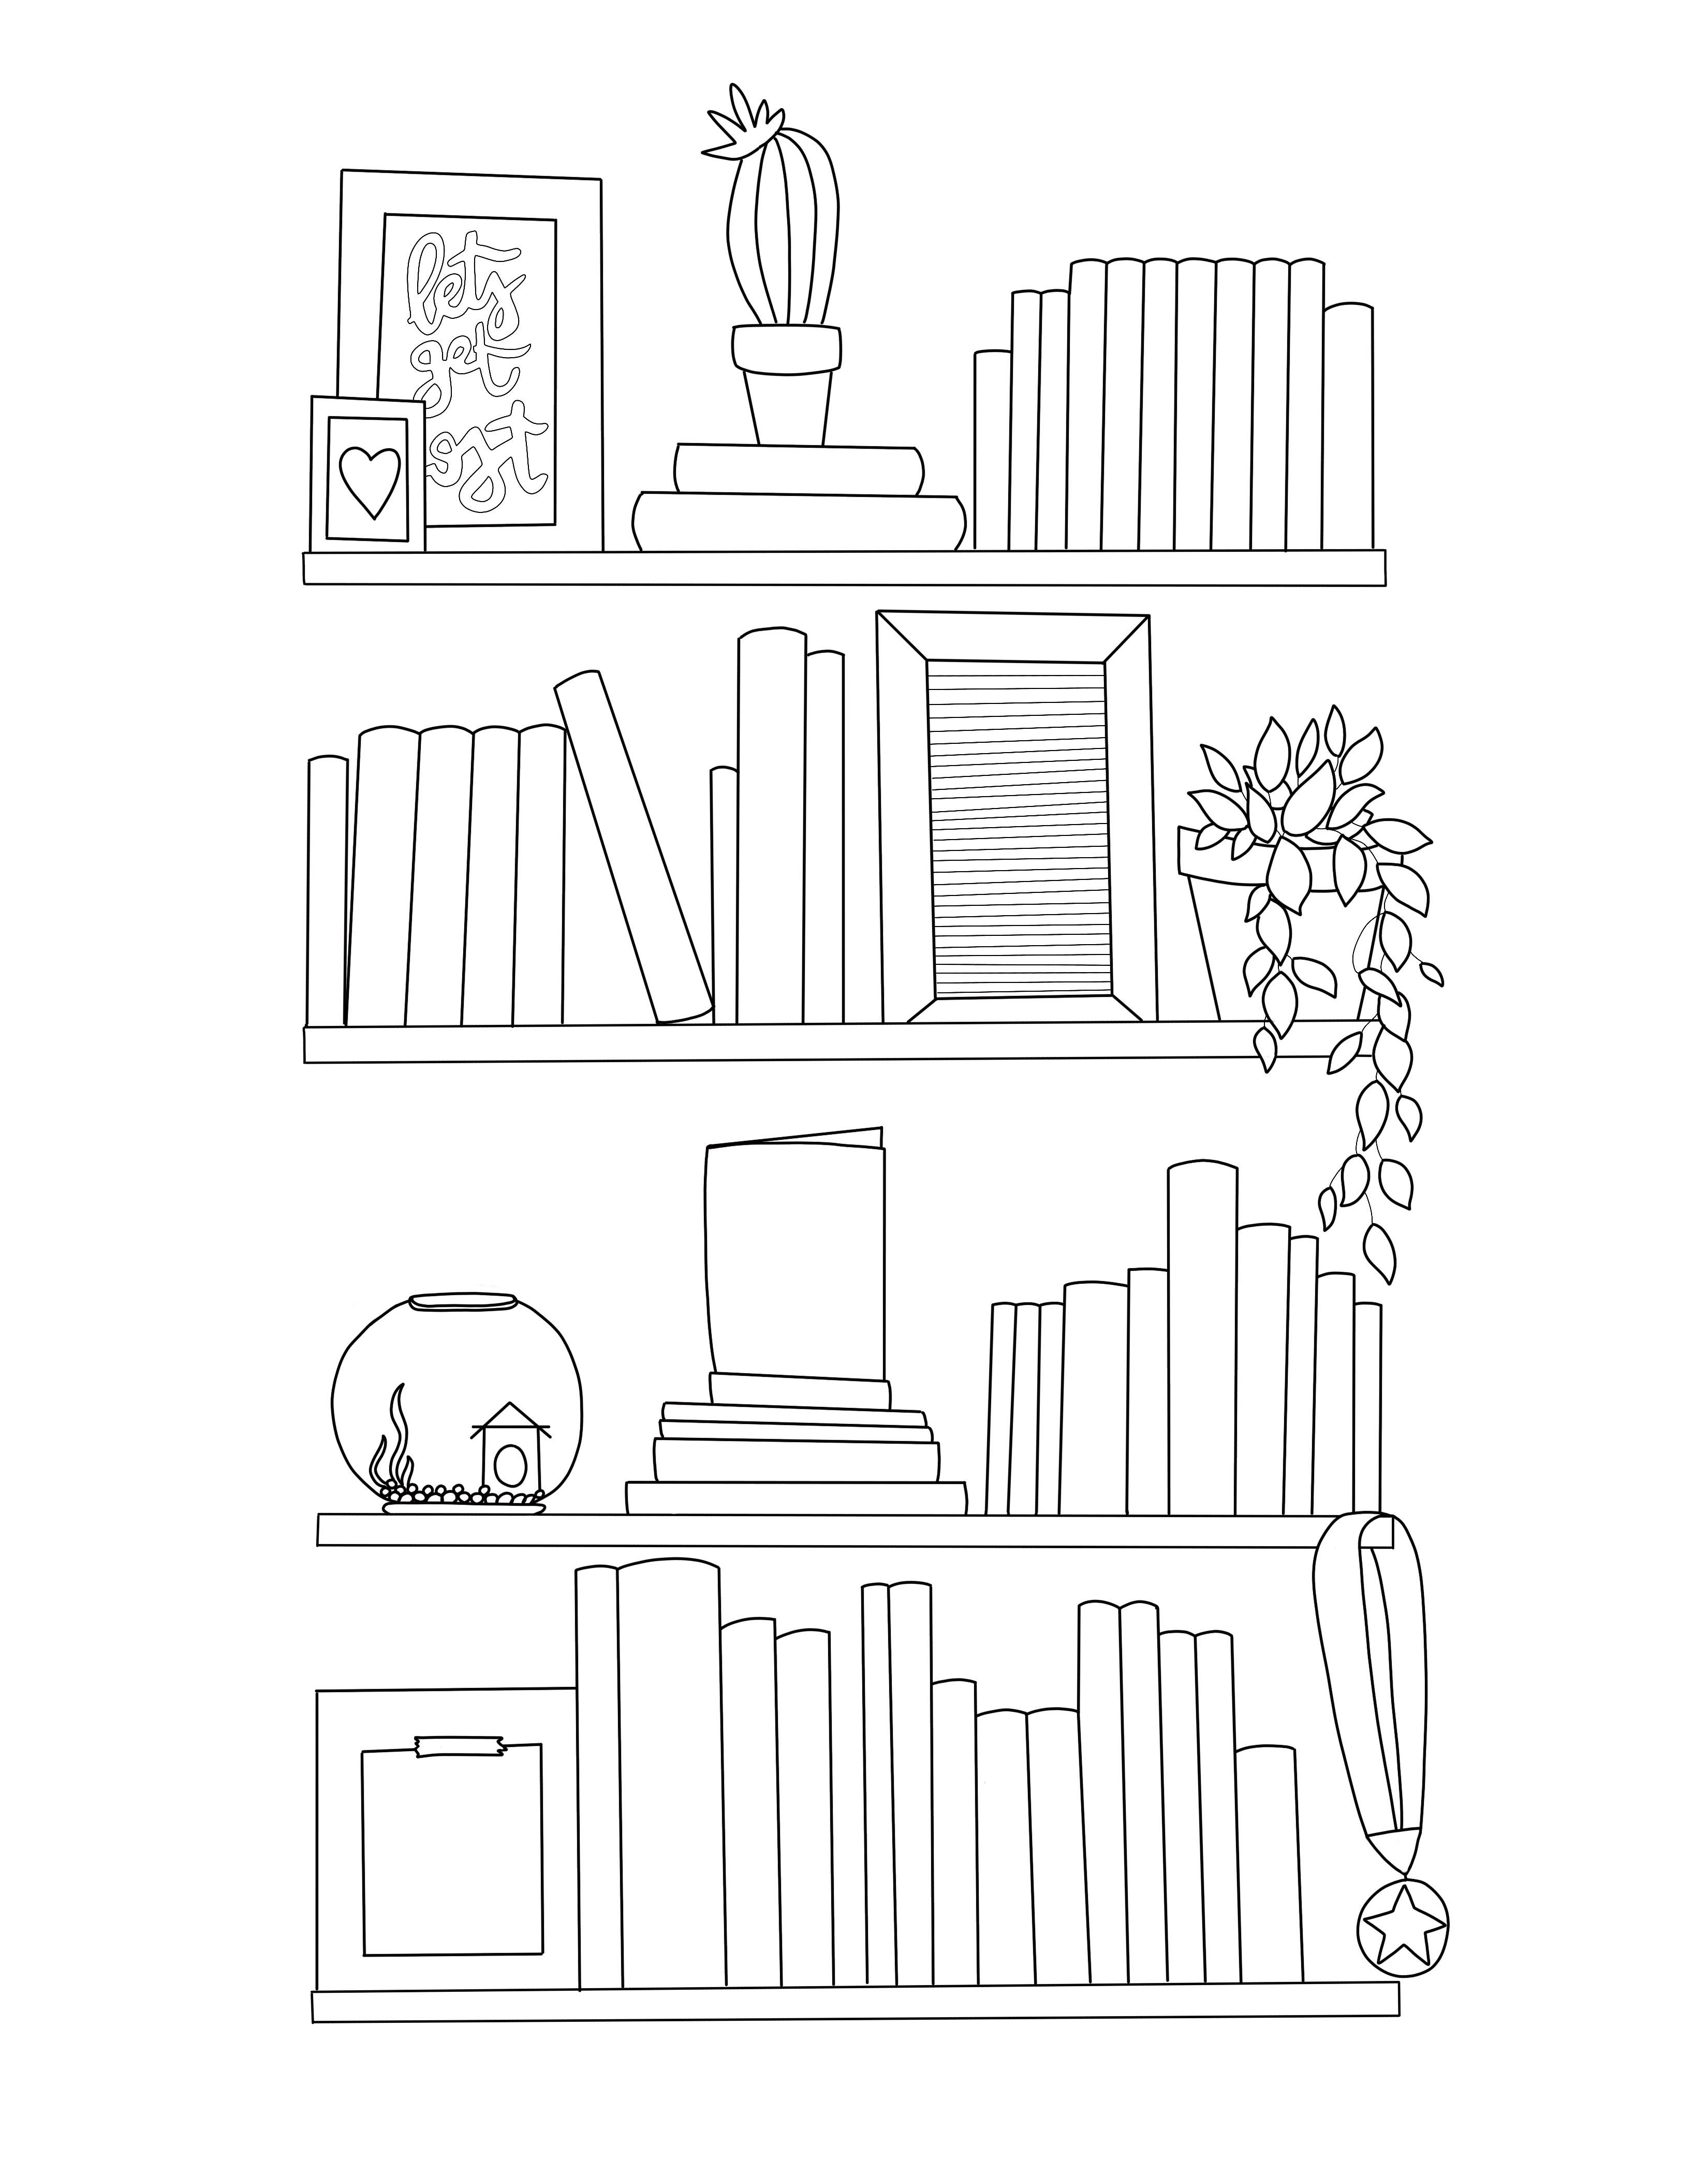 Free Printable Book Log Coloring Page Book Books Books Aesthetic Books To Read Bookshelf Colori Bullet Journal Ideas Pages Bullet Journal Books Book Log